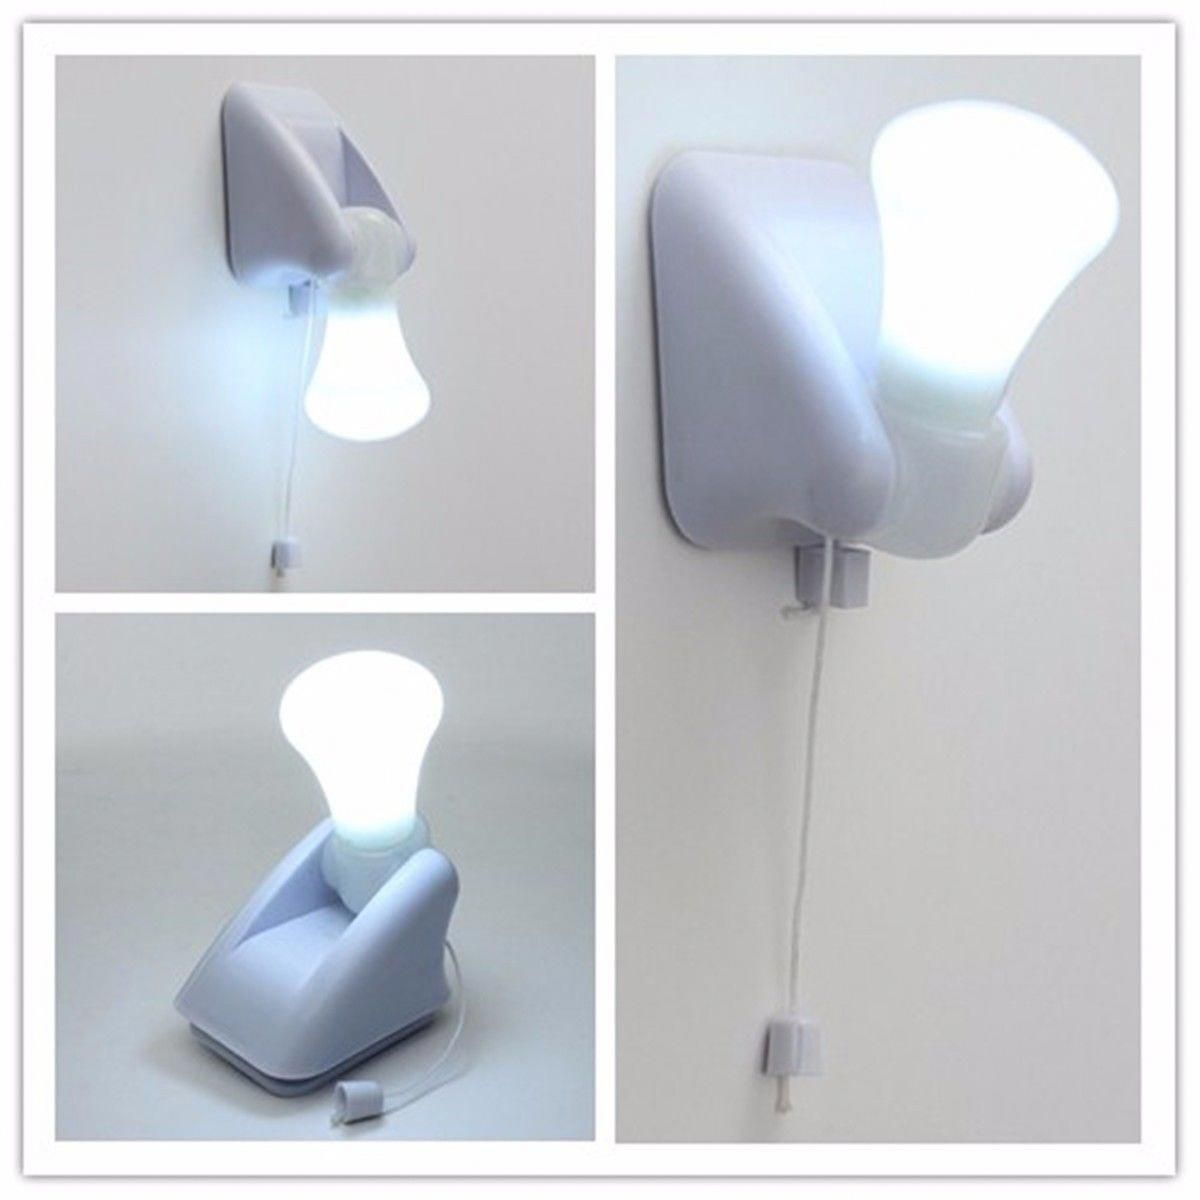 229 Wire Led Bulb Cabinet Night Light Battery Self Wiring A Lamp With Adhesive Wall Mount Ebay Home Garden Wallmountedtable